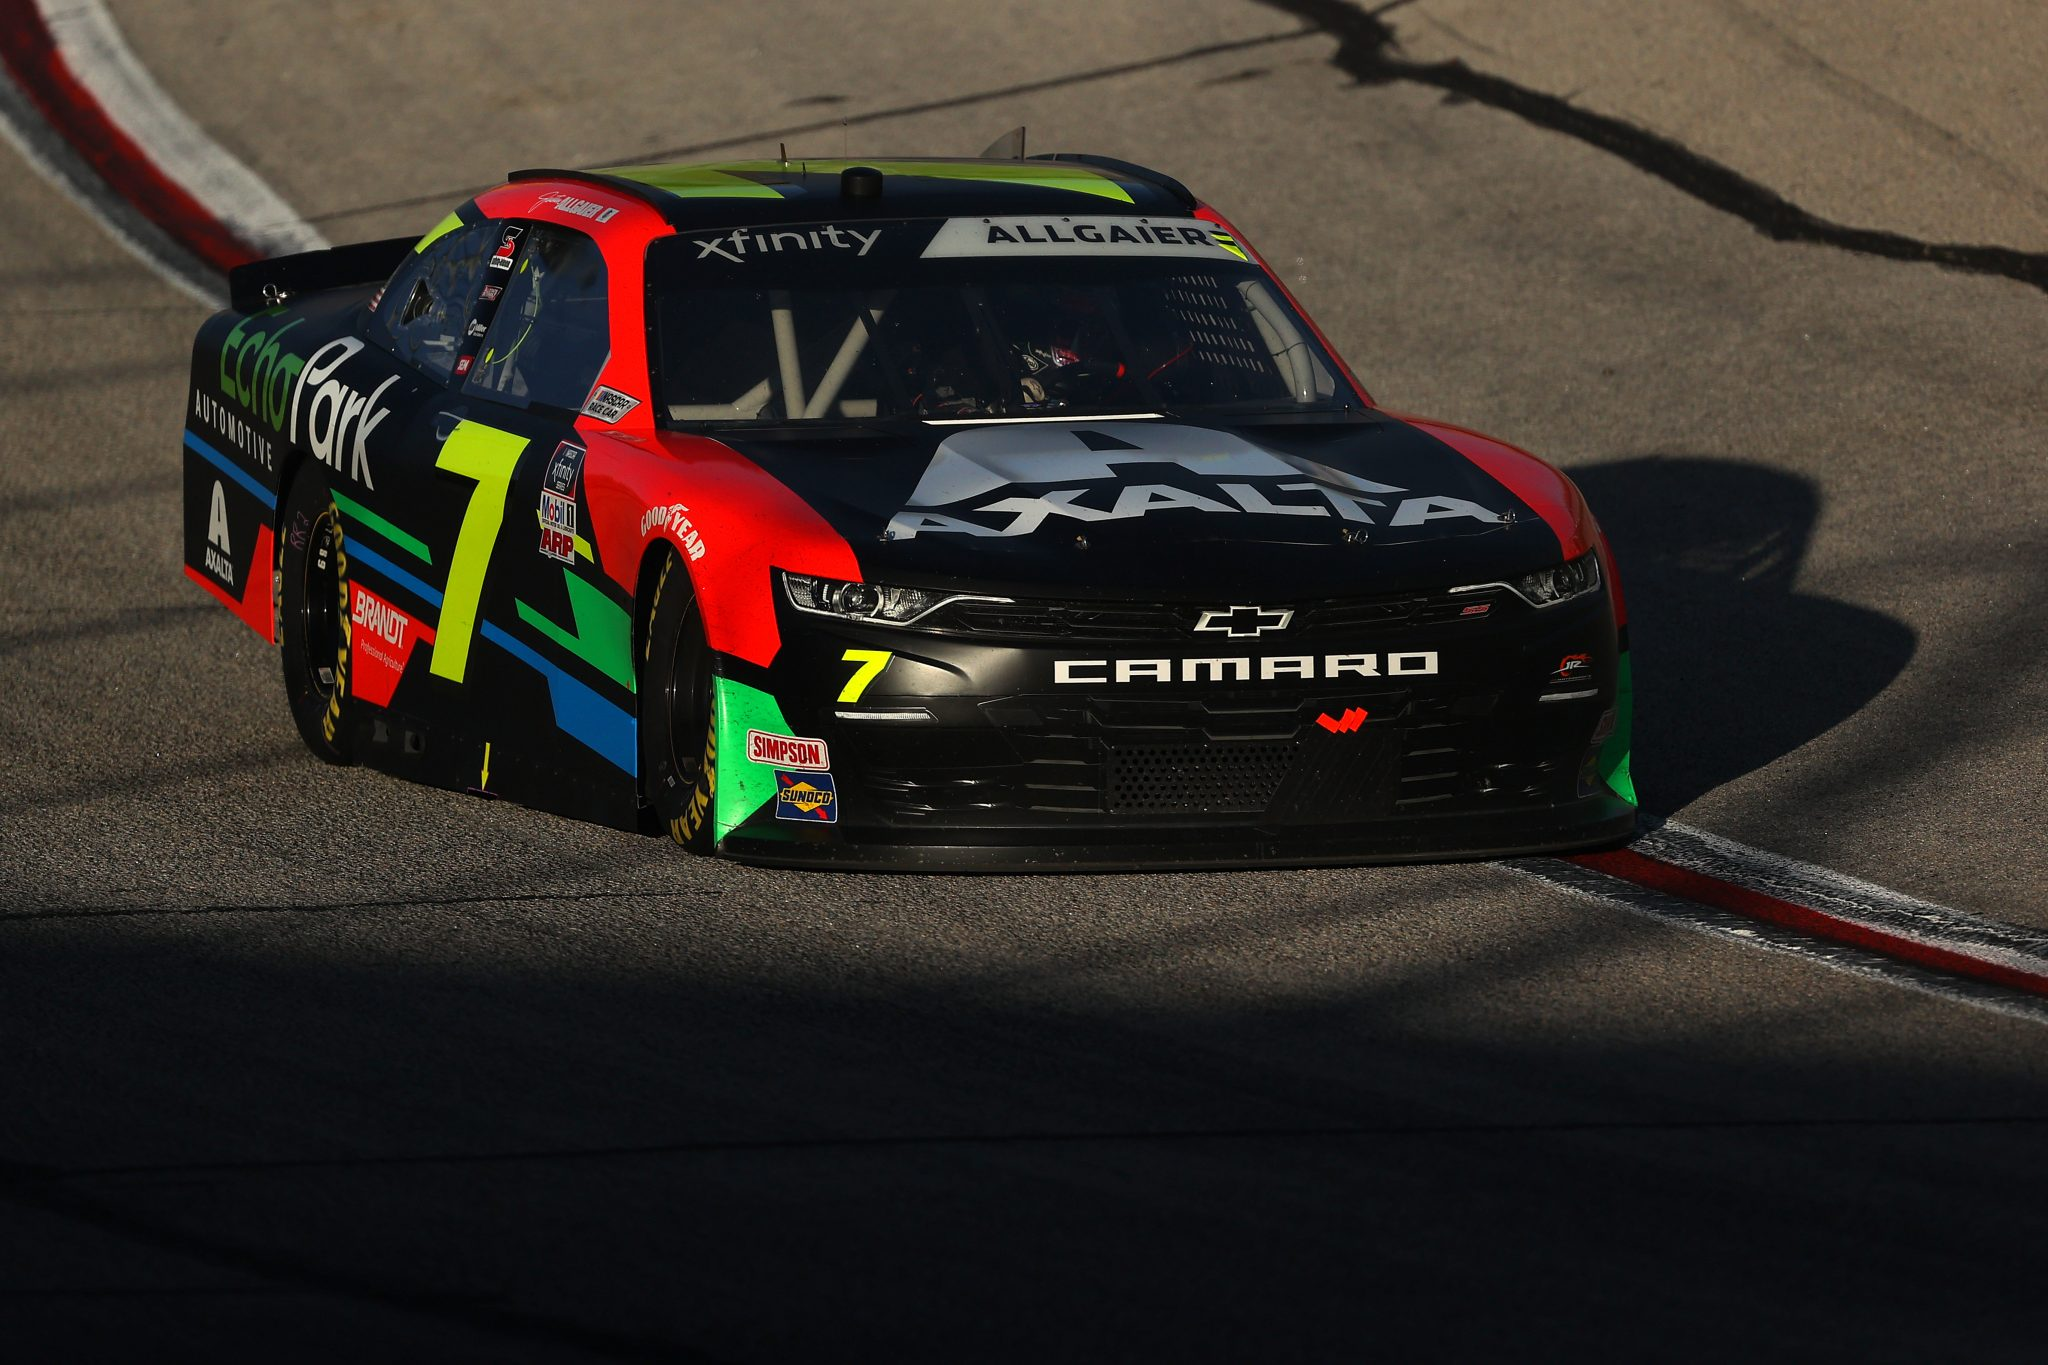 HAMPTON, GEORGIA - MARCH 20: Justin Allgaier, driver of the #7 Axalta/EchoPark Automotive Chevrolet, drives during the NASCAR Xfinity Series EchoPark 250 at Atlanta Motor Speedway on March 20, 2021 in Hampton, Georgia. (Photo by Kevin C. Cox/Getty Images)   Getty Images